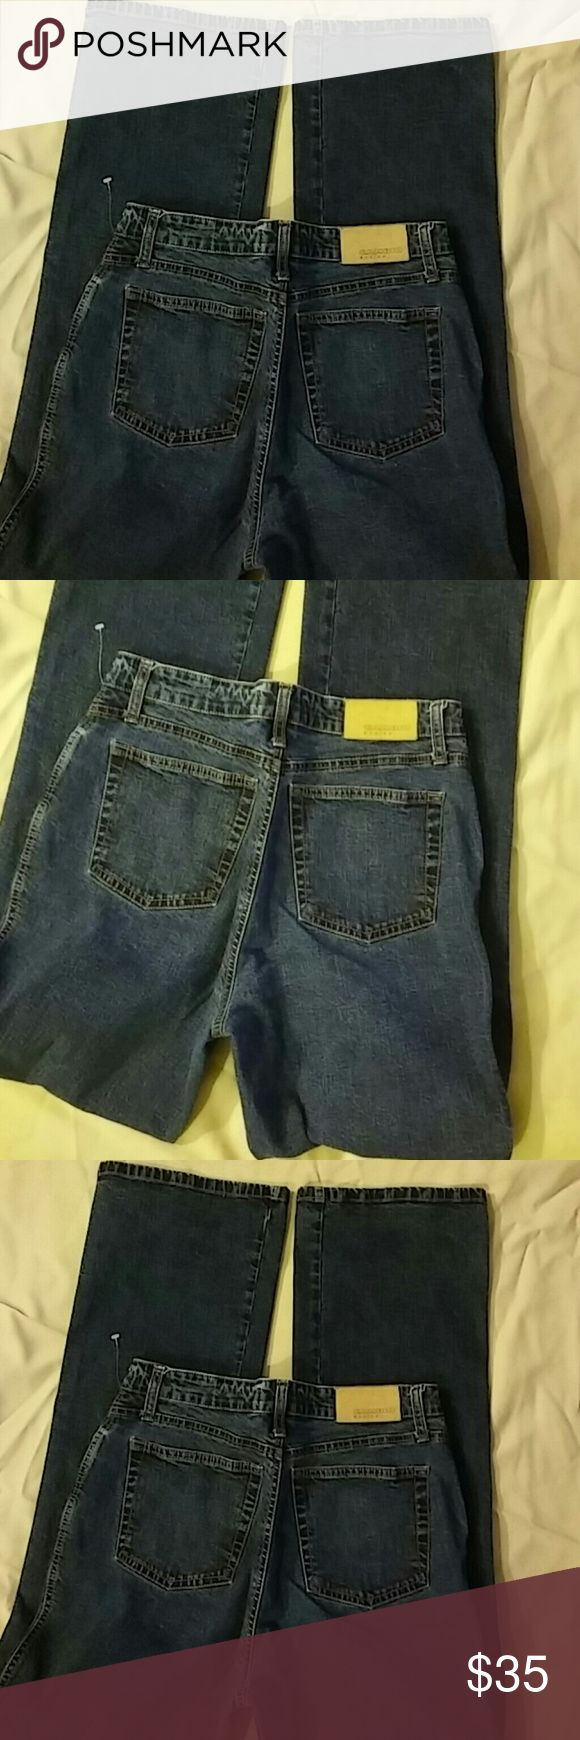 Cambio Jade Jeans Sz 10 Made in Poland Cambio Jeans